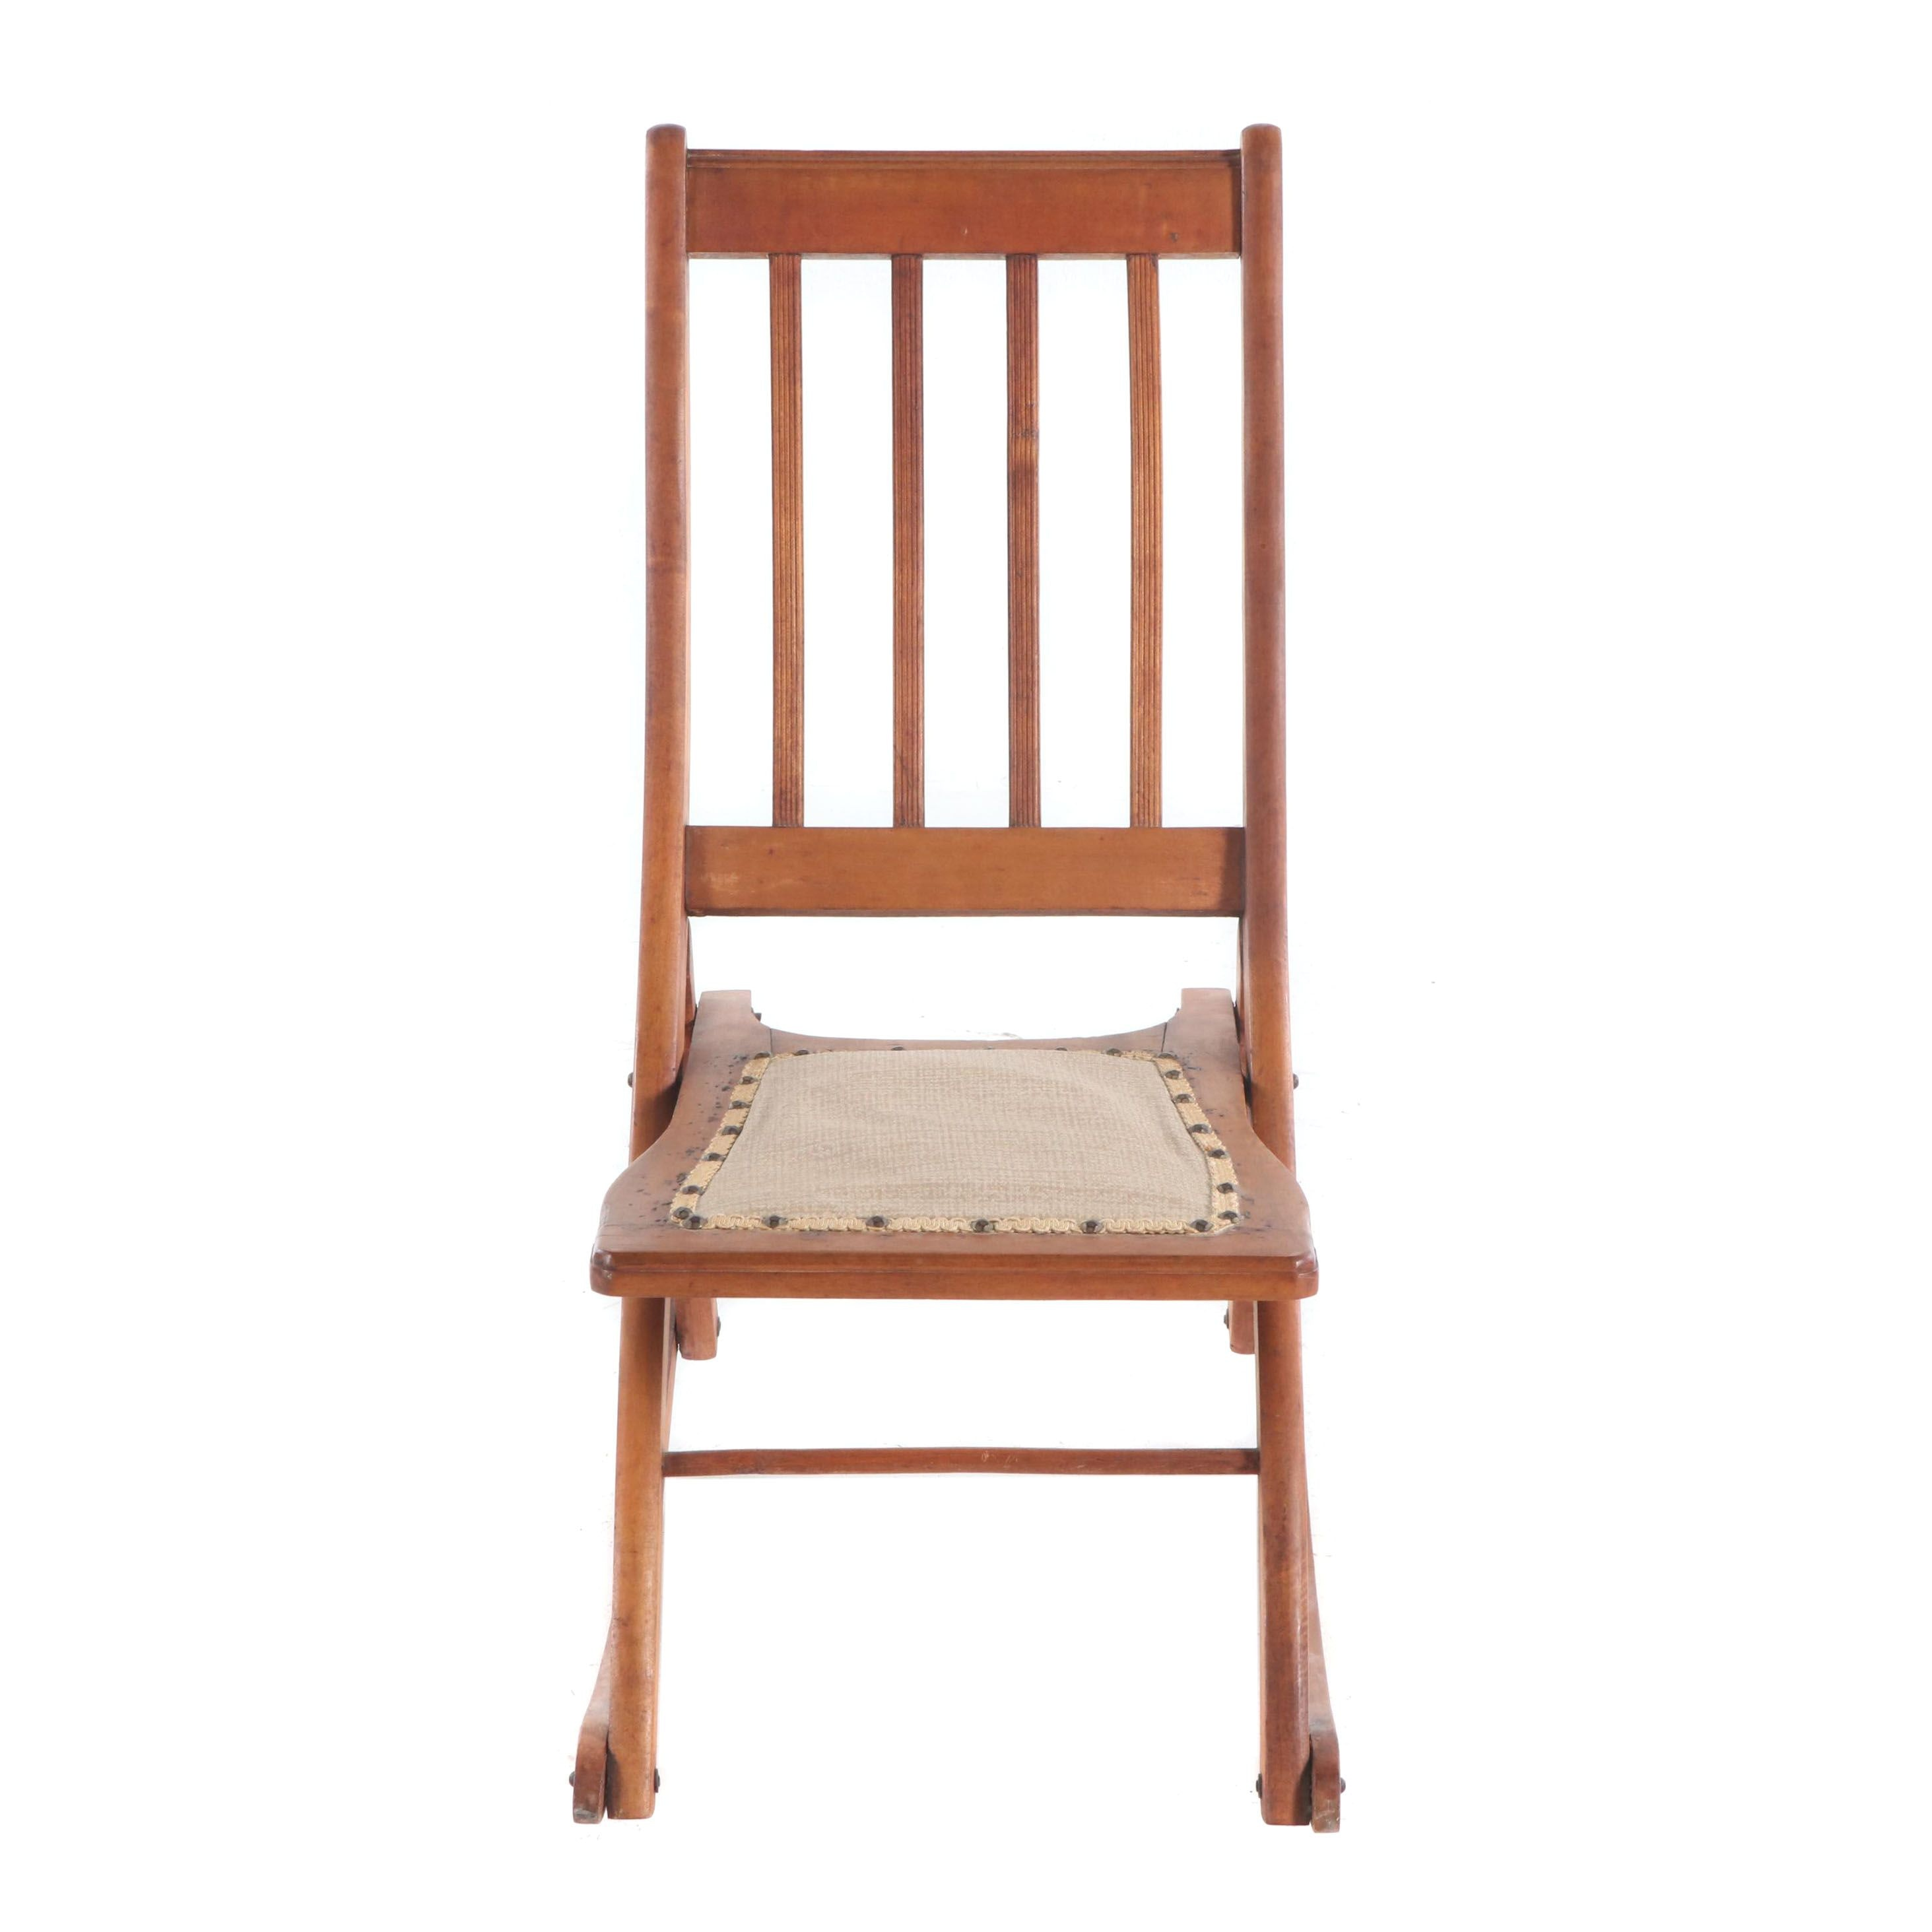 Antique Folding Wooden Rocking Chair